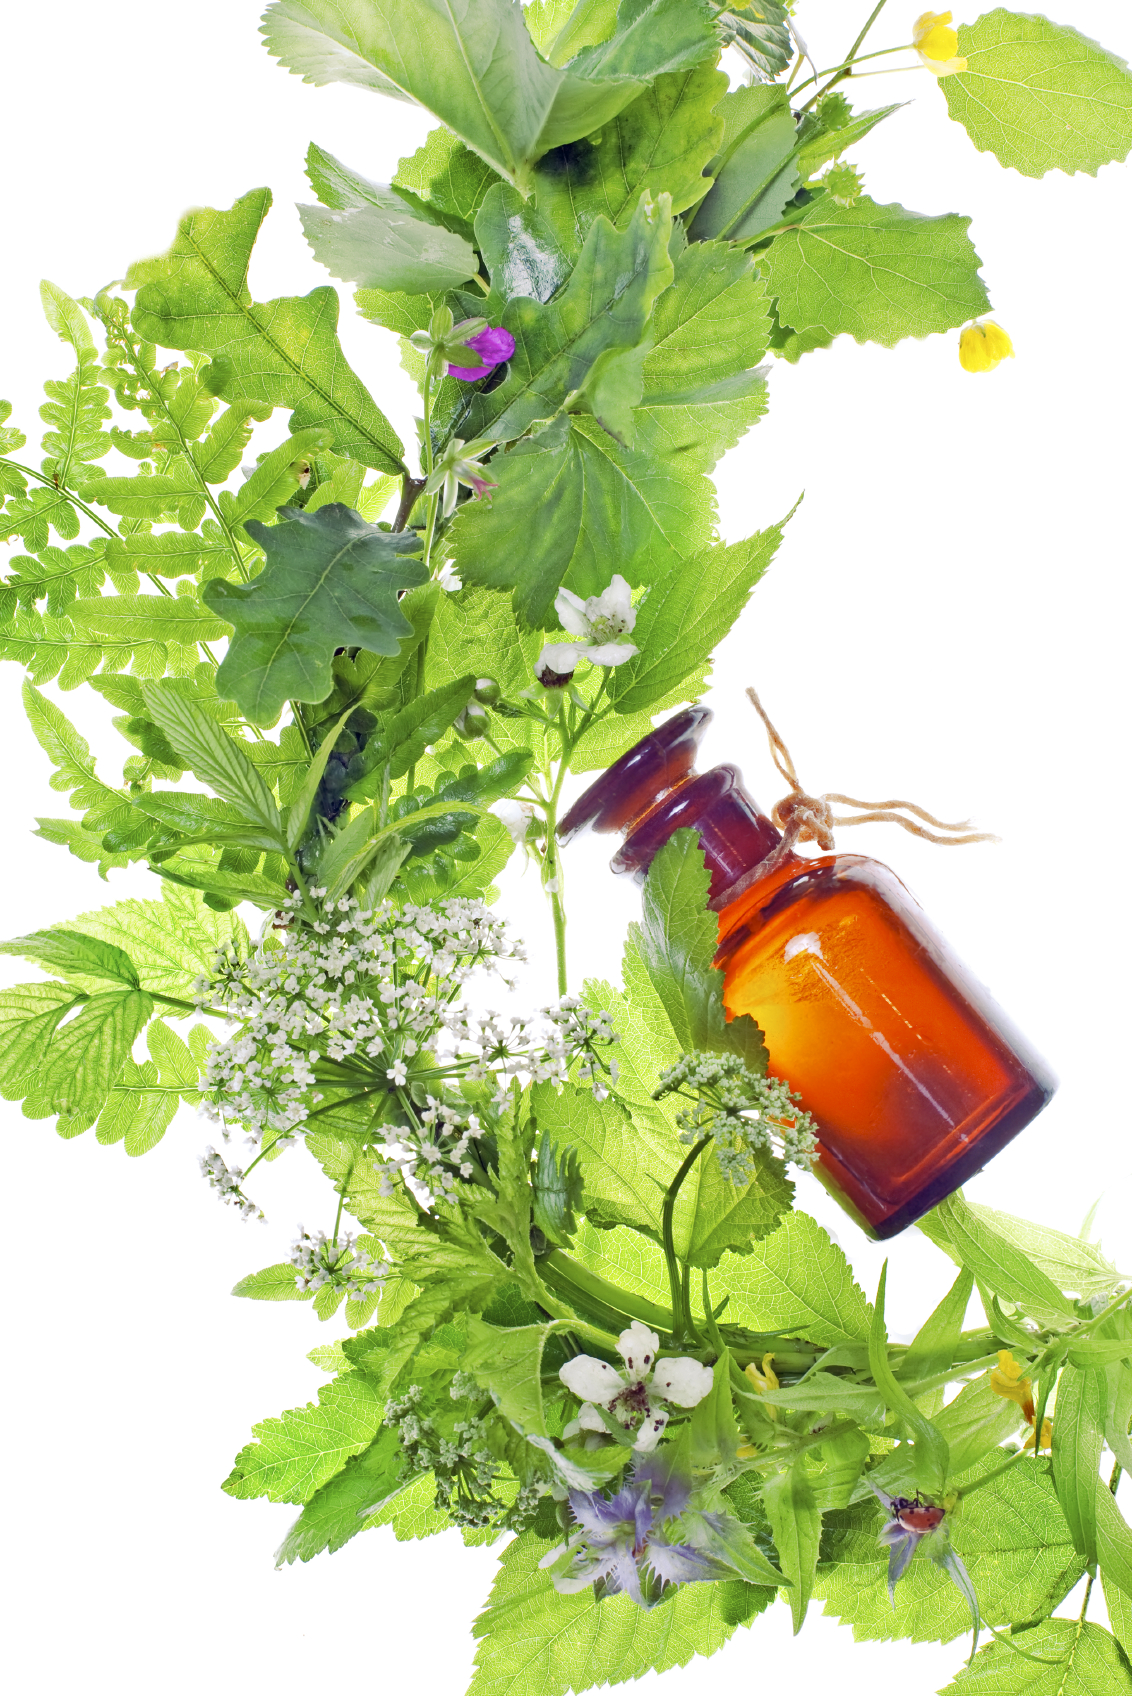 Essential oil in a glass bottle surrounded by green plants